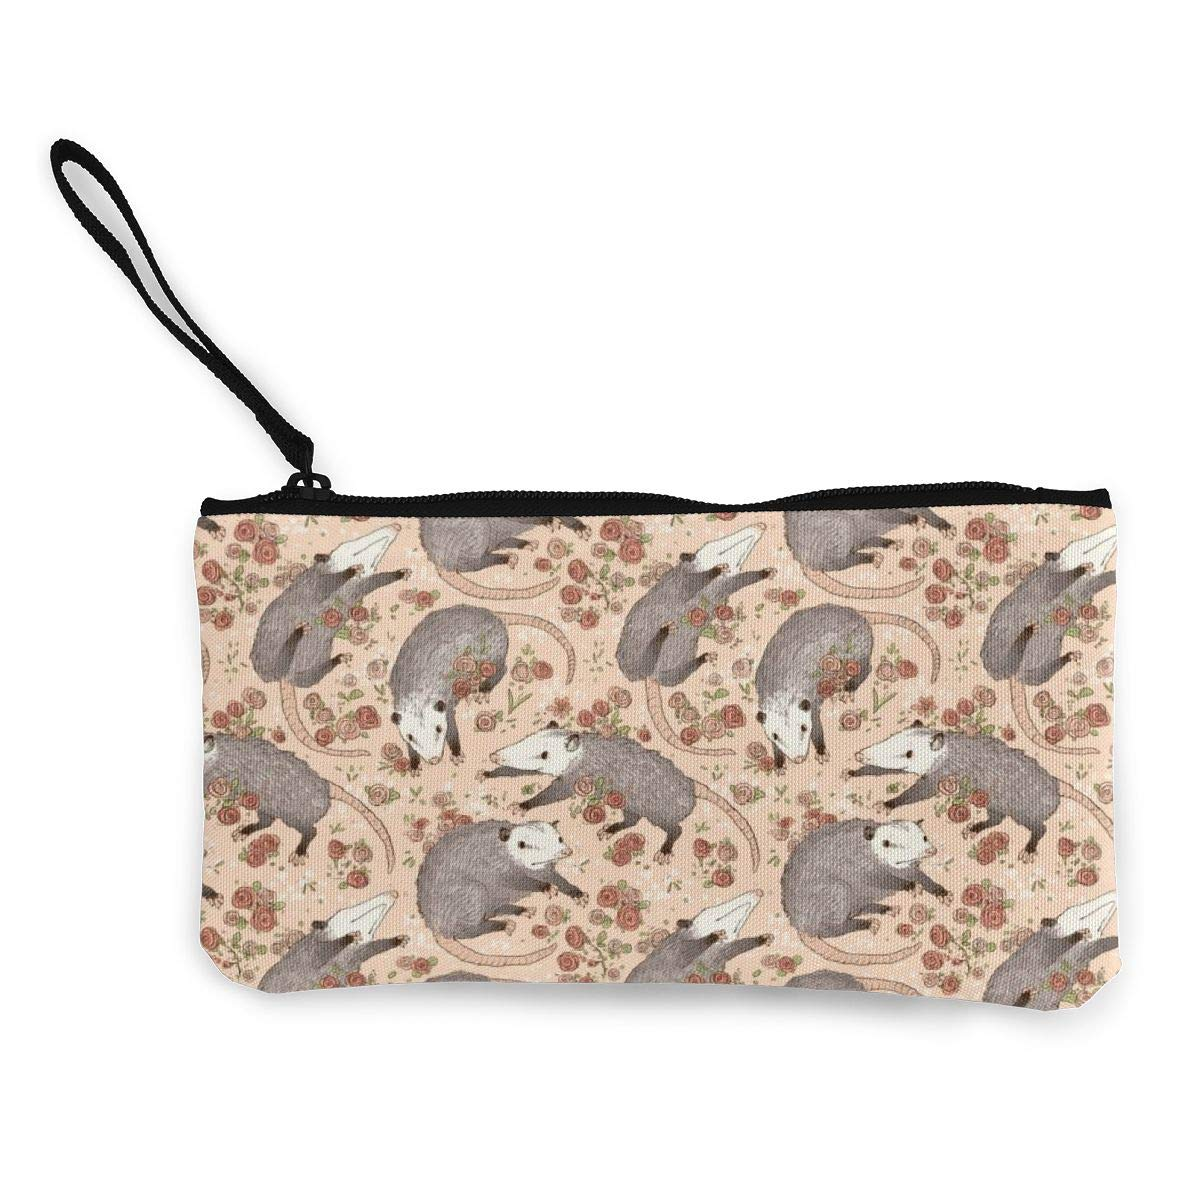 Befuddled Possums Coin Pouch Canvas Coin Purse Cellphone Card Bag With Handle And Zipper